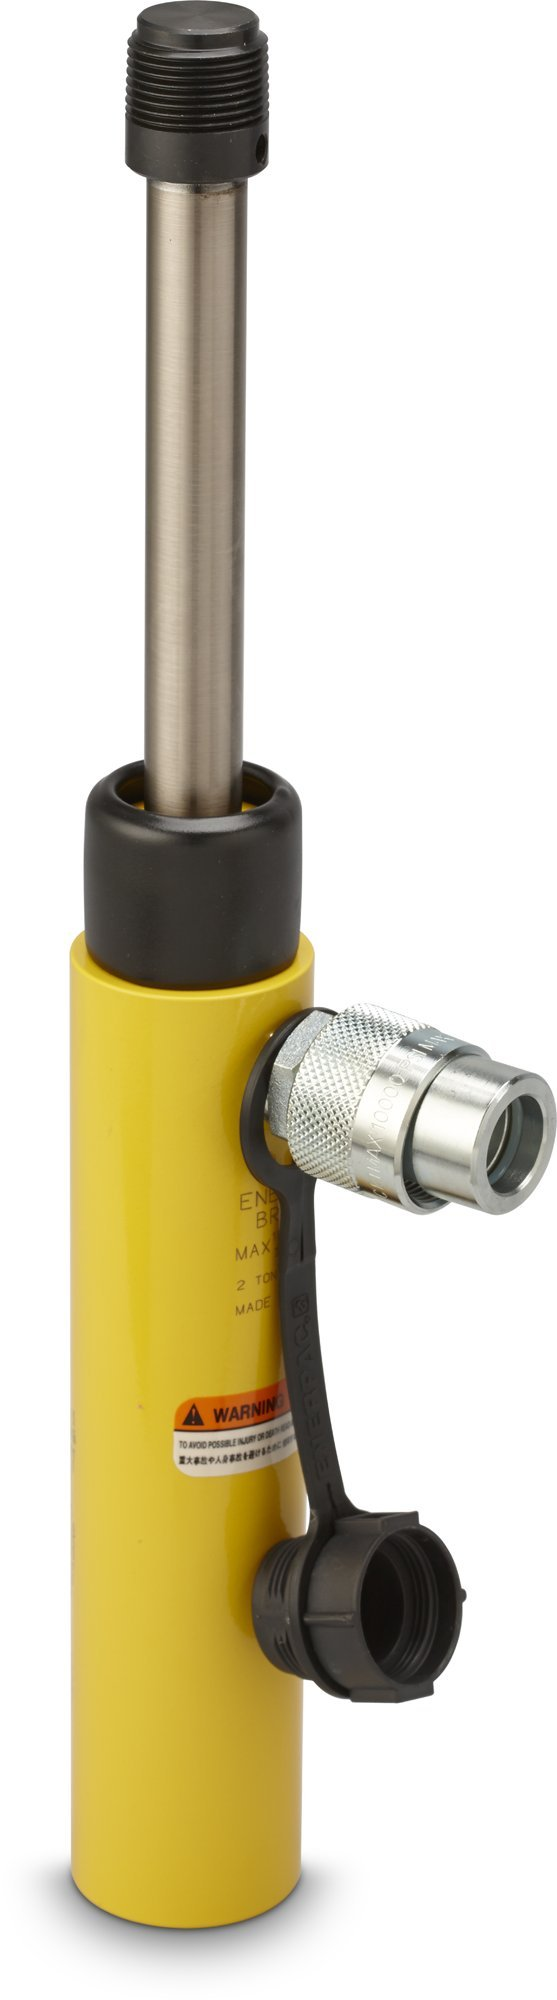 Enerpac BRC-25 Hydraulic Pull Cylinder with 2.5-Ton Capacity, Single Port, 5'' Stroke Length